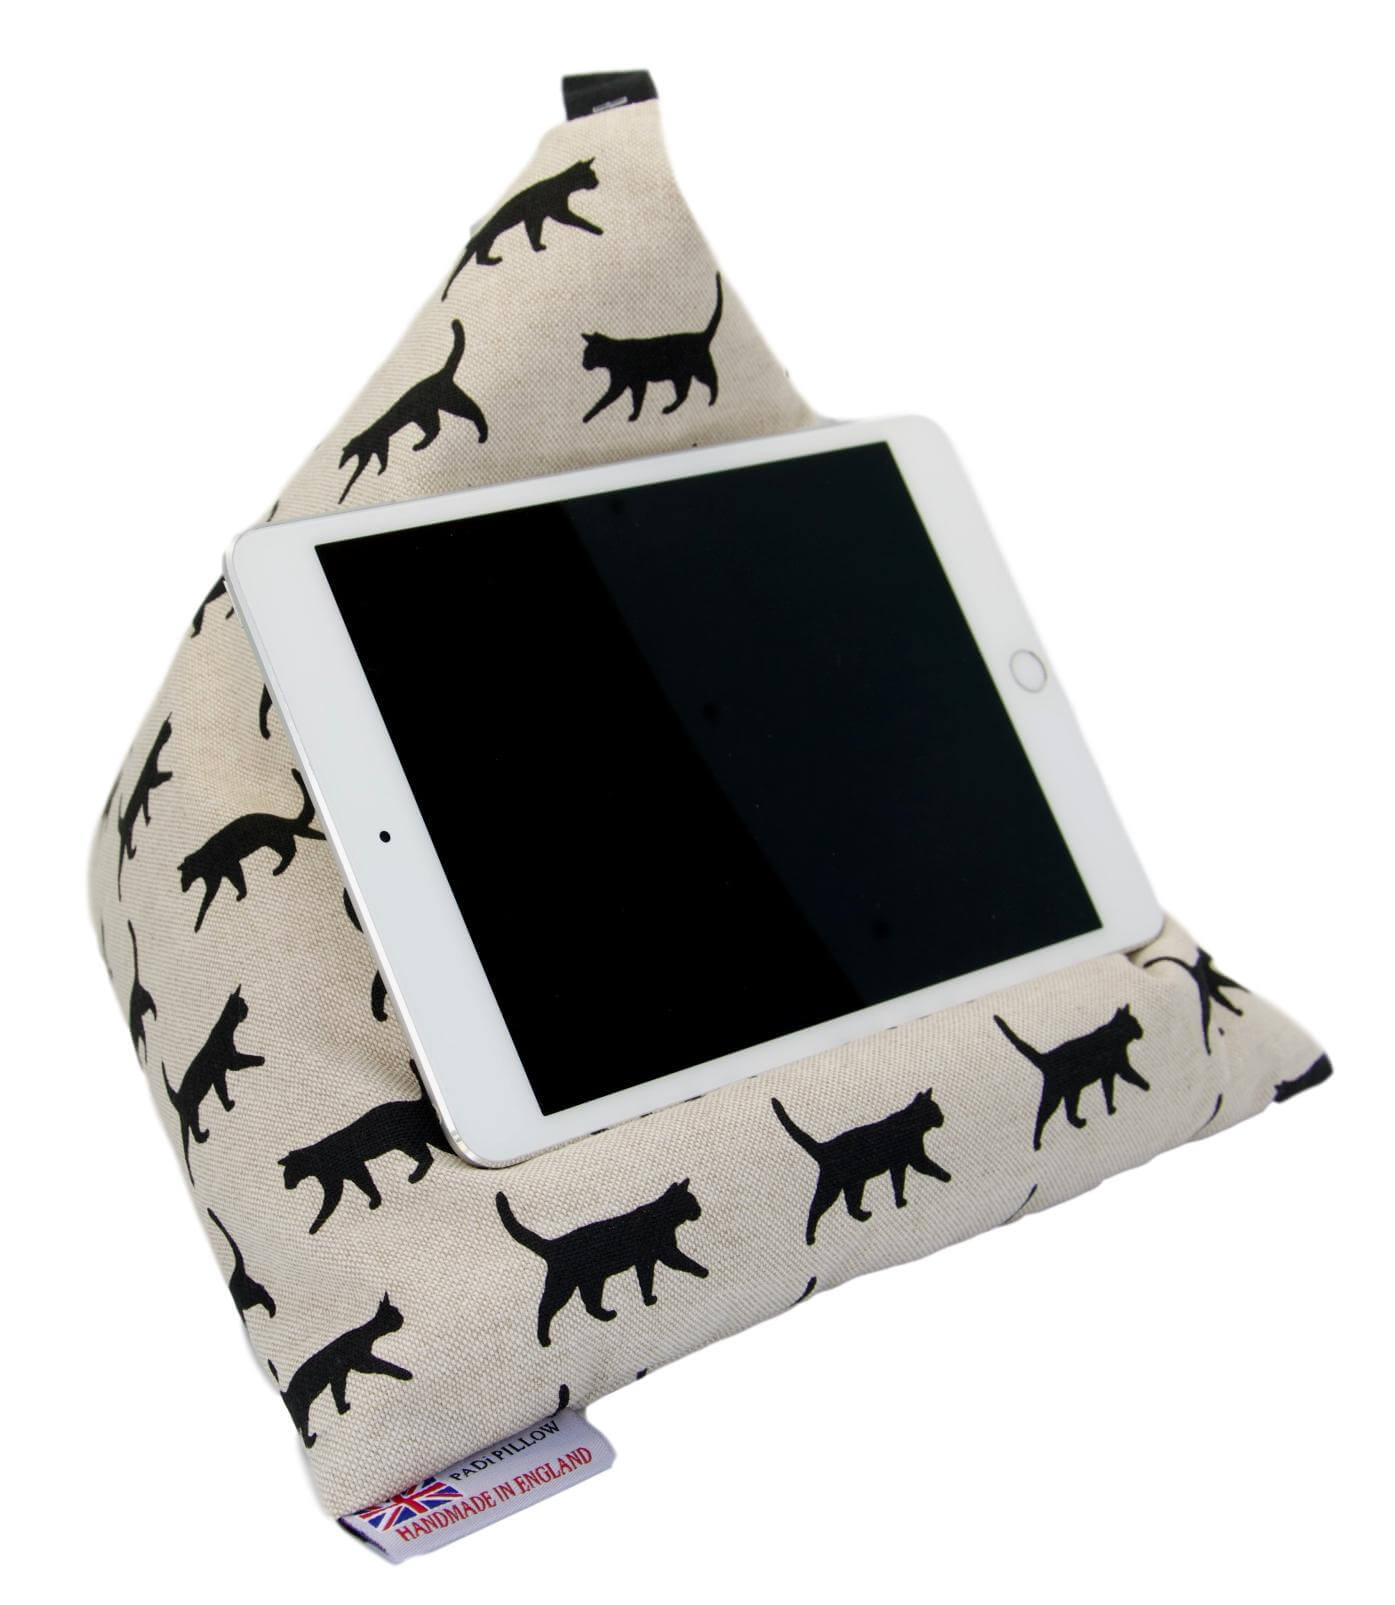 Black Cat Walking PADi Pillow Tablet Stand